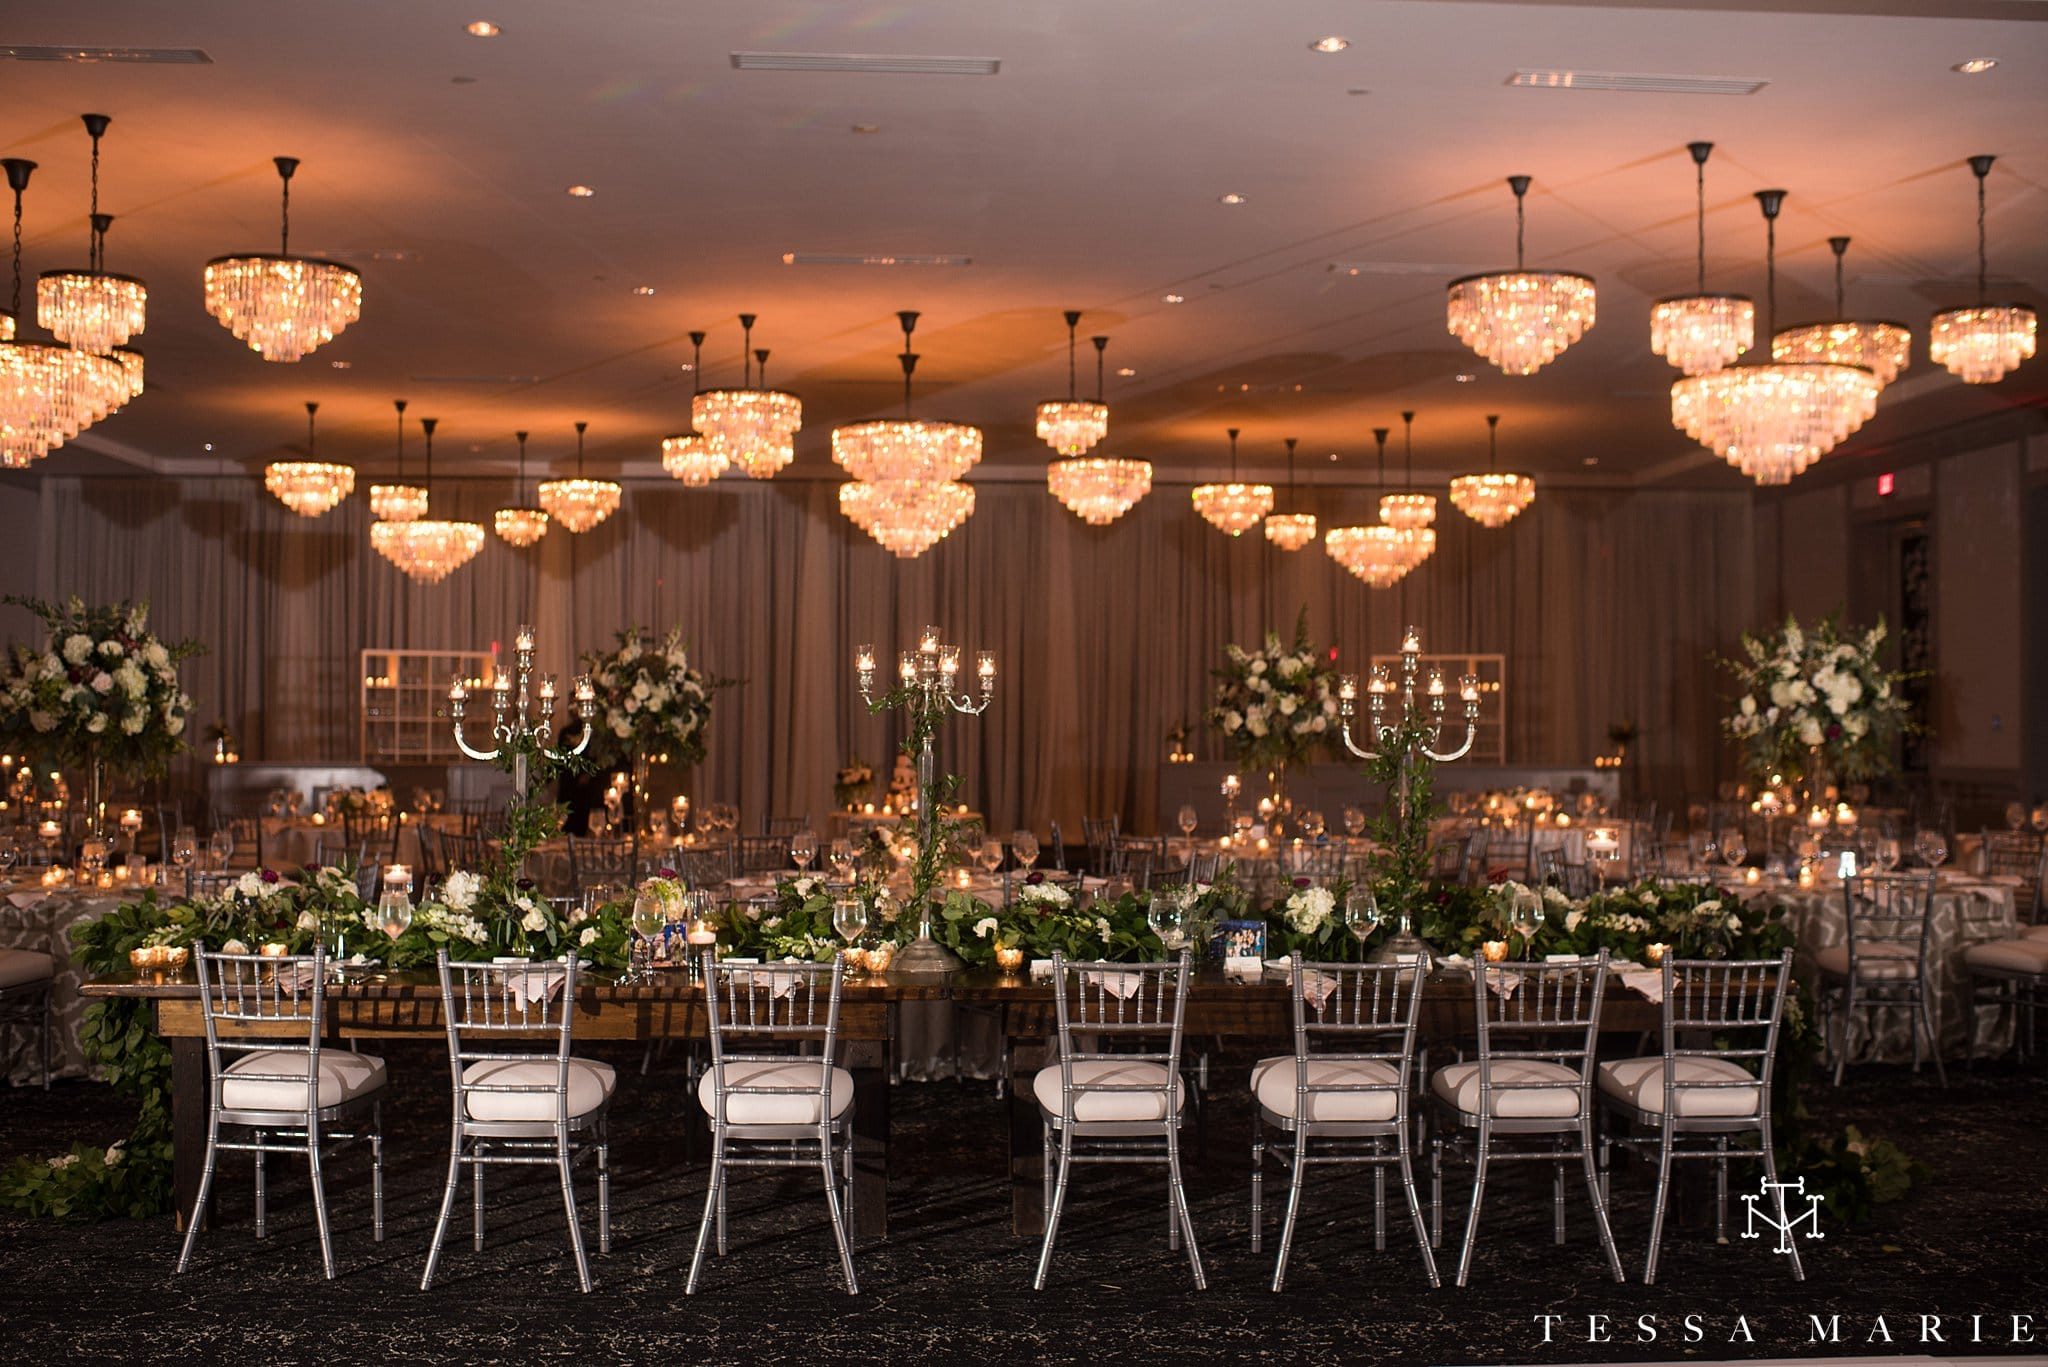 tessa_marie_weddings_estate_wedding_flourish_wedding_legendary_events_wedding_angels_bride_groom_wedding_Day_rainy_wedding_day_fall_october_wedding_atlantas_best_wedding_professionals_0675.jpg